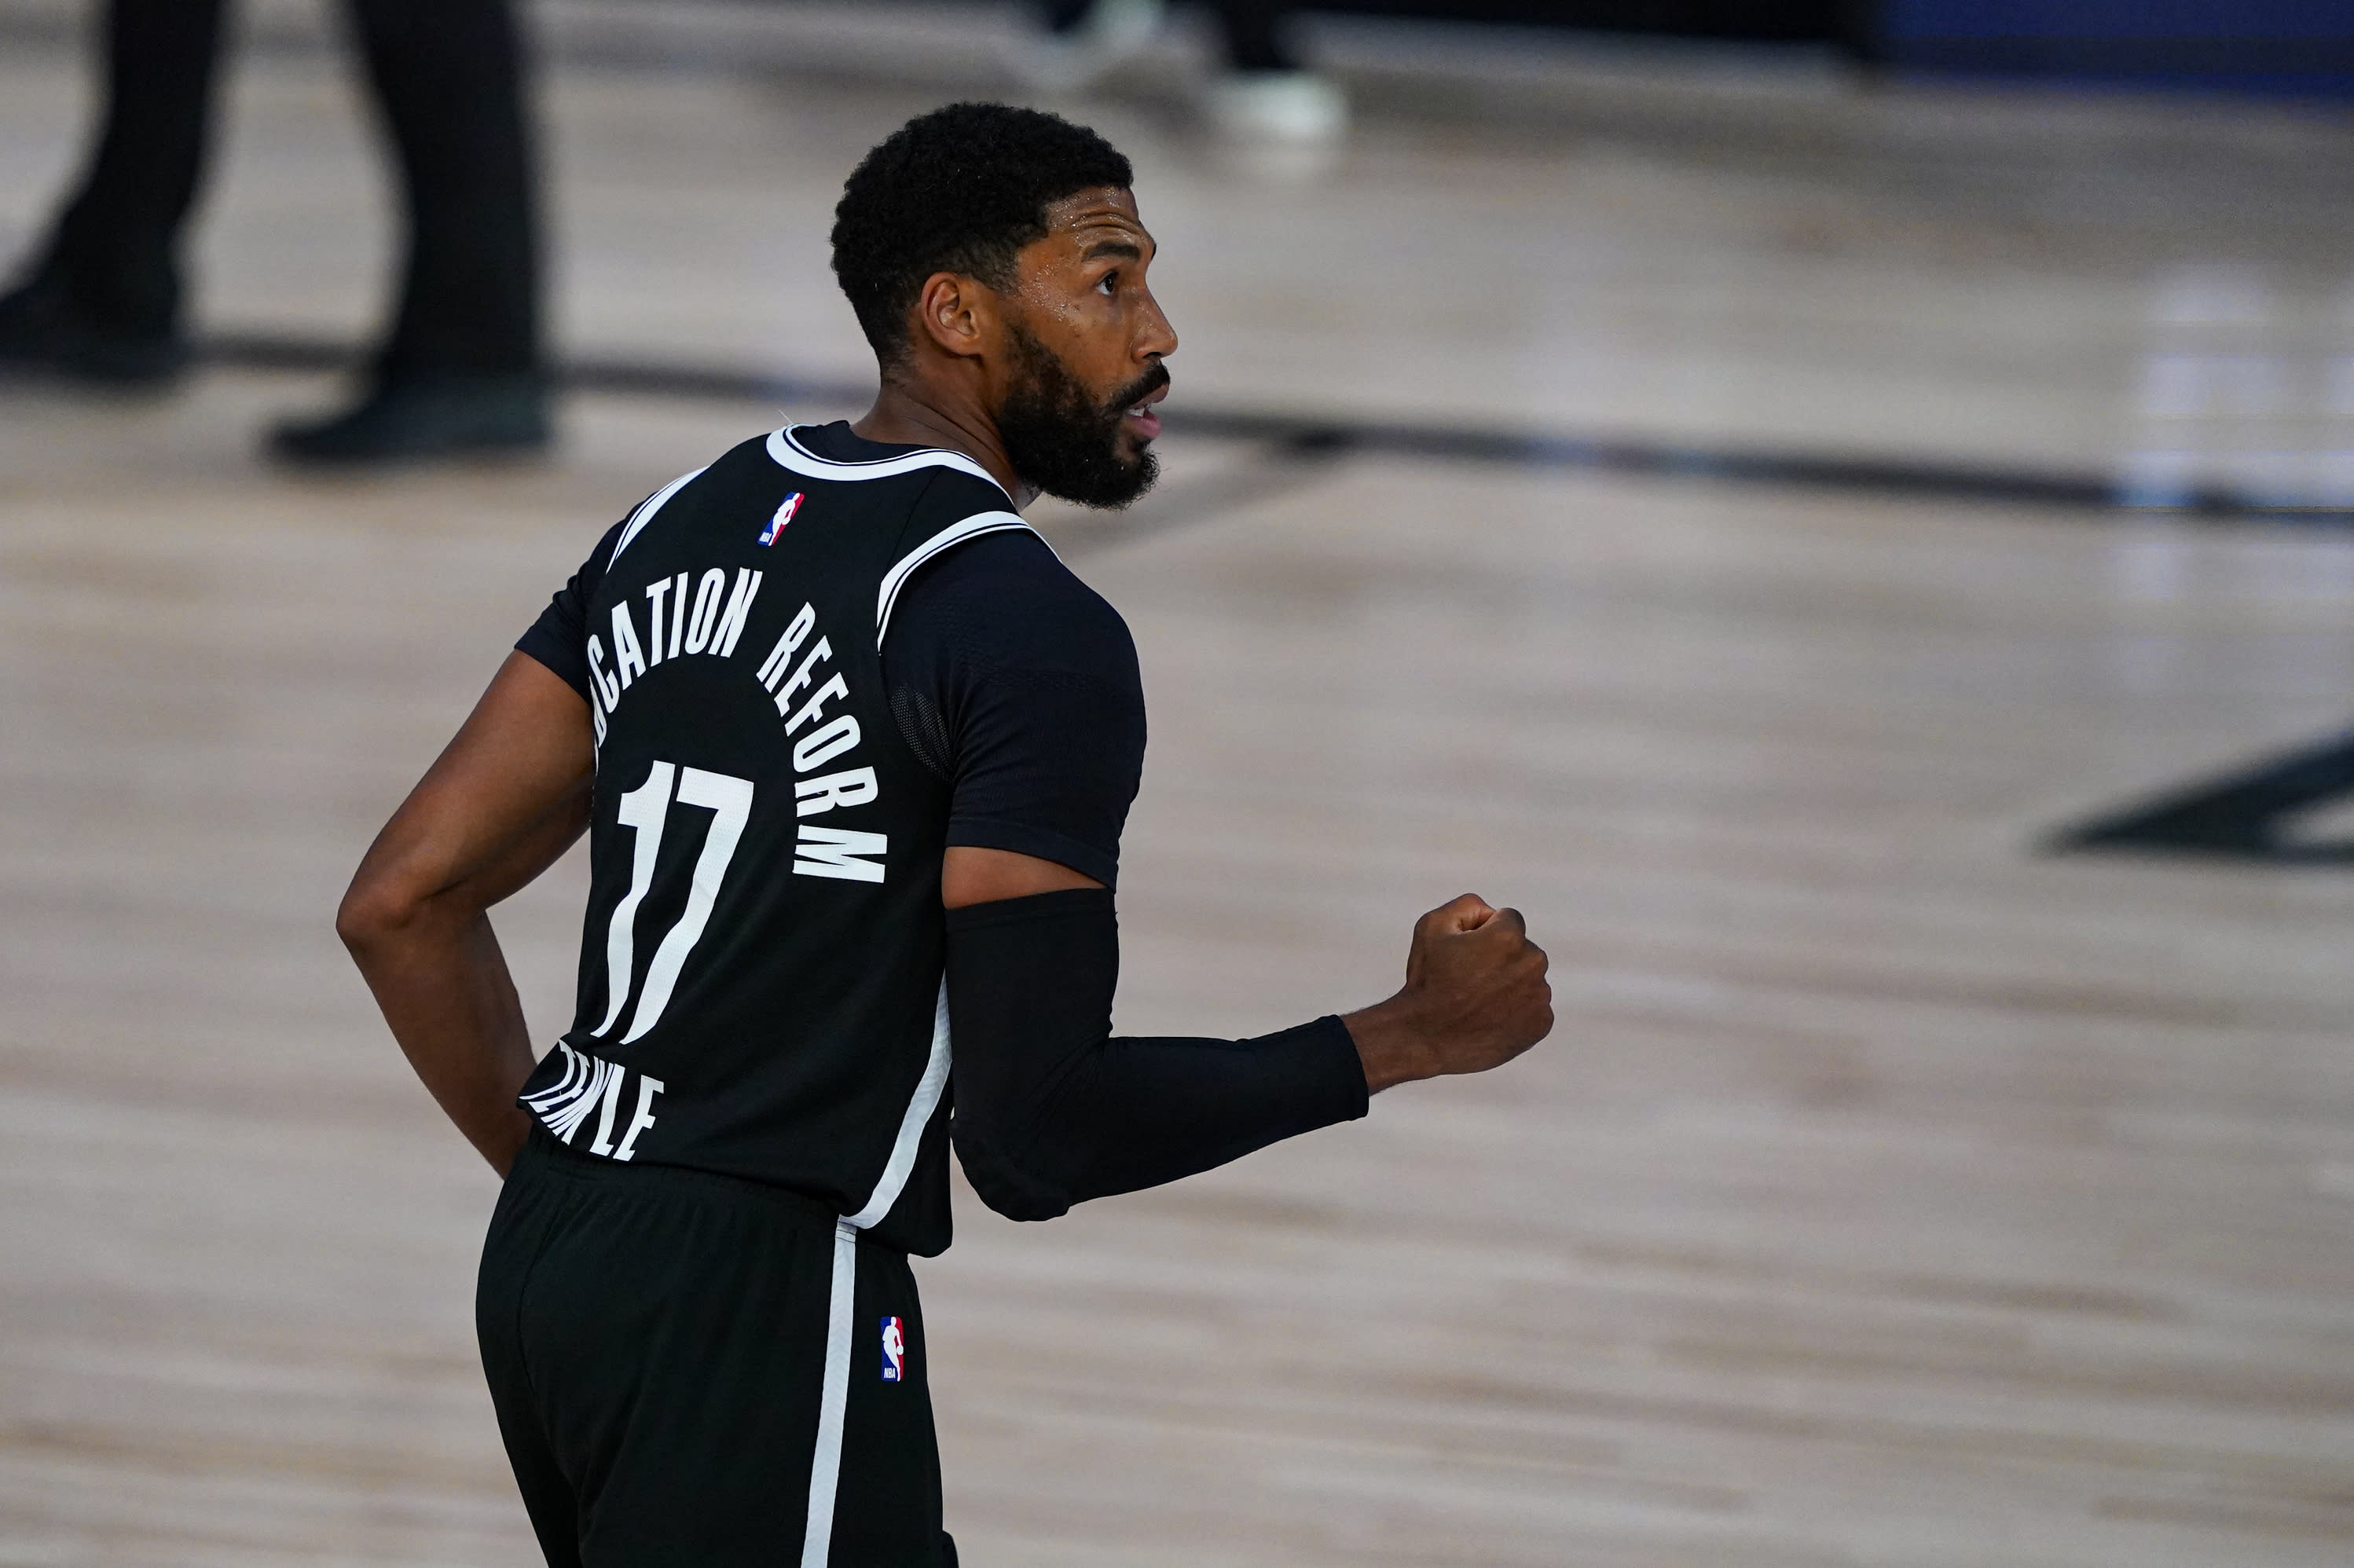 Brooklyn Nets guard Garrett Temple (17) celebrates three-point basket in the closing seconds to defeat the Milwaukee Bucks 119-116 in an NBA basketball game Tuesday, Aug. 4, 2020 in Lake Buena Vista, Fla. (AP Photo/Ashley Landis)